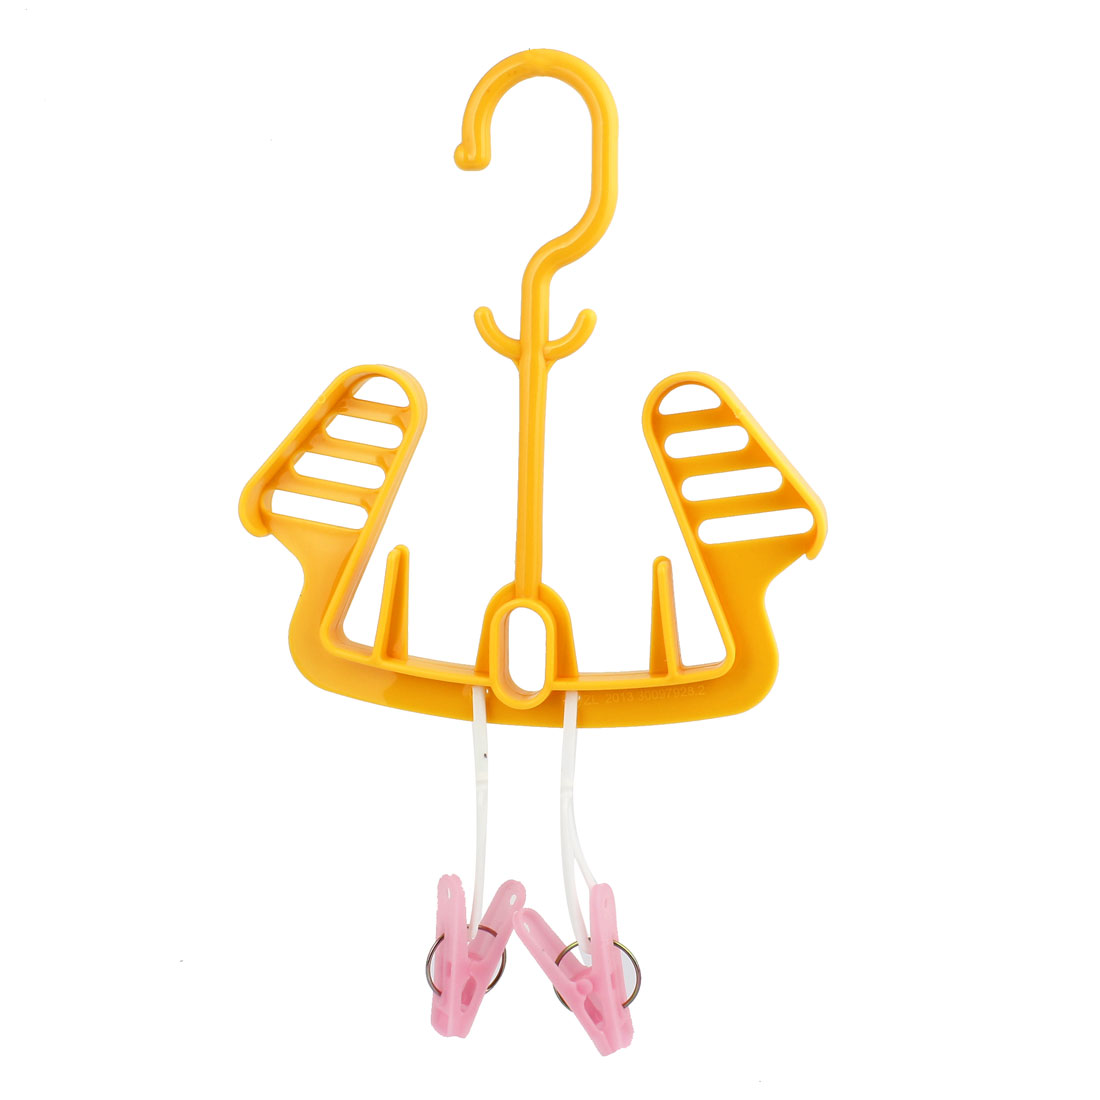 Home Foldable Plastic Shoes Drying Shelf Rack Hook Hanger Holder Orange